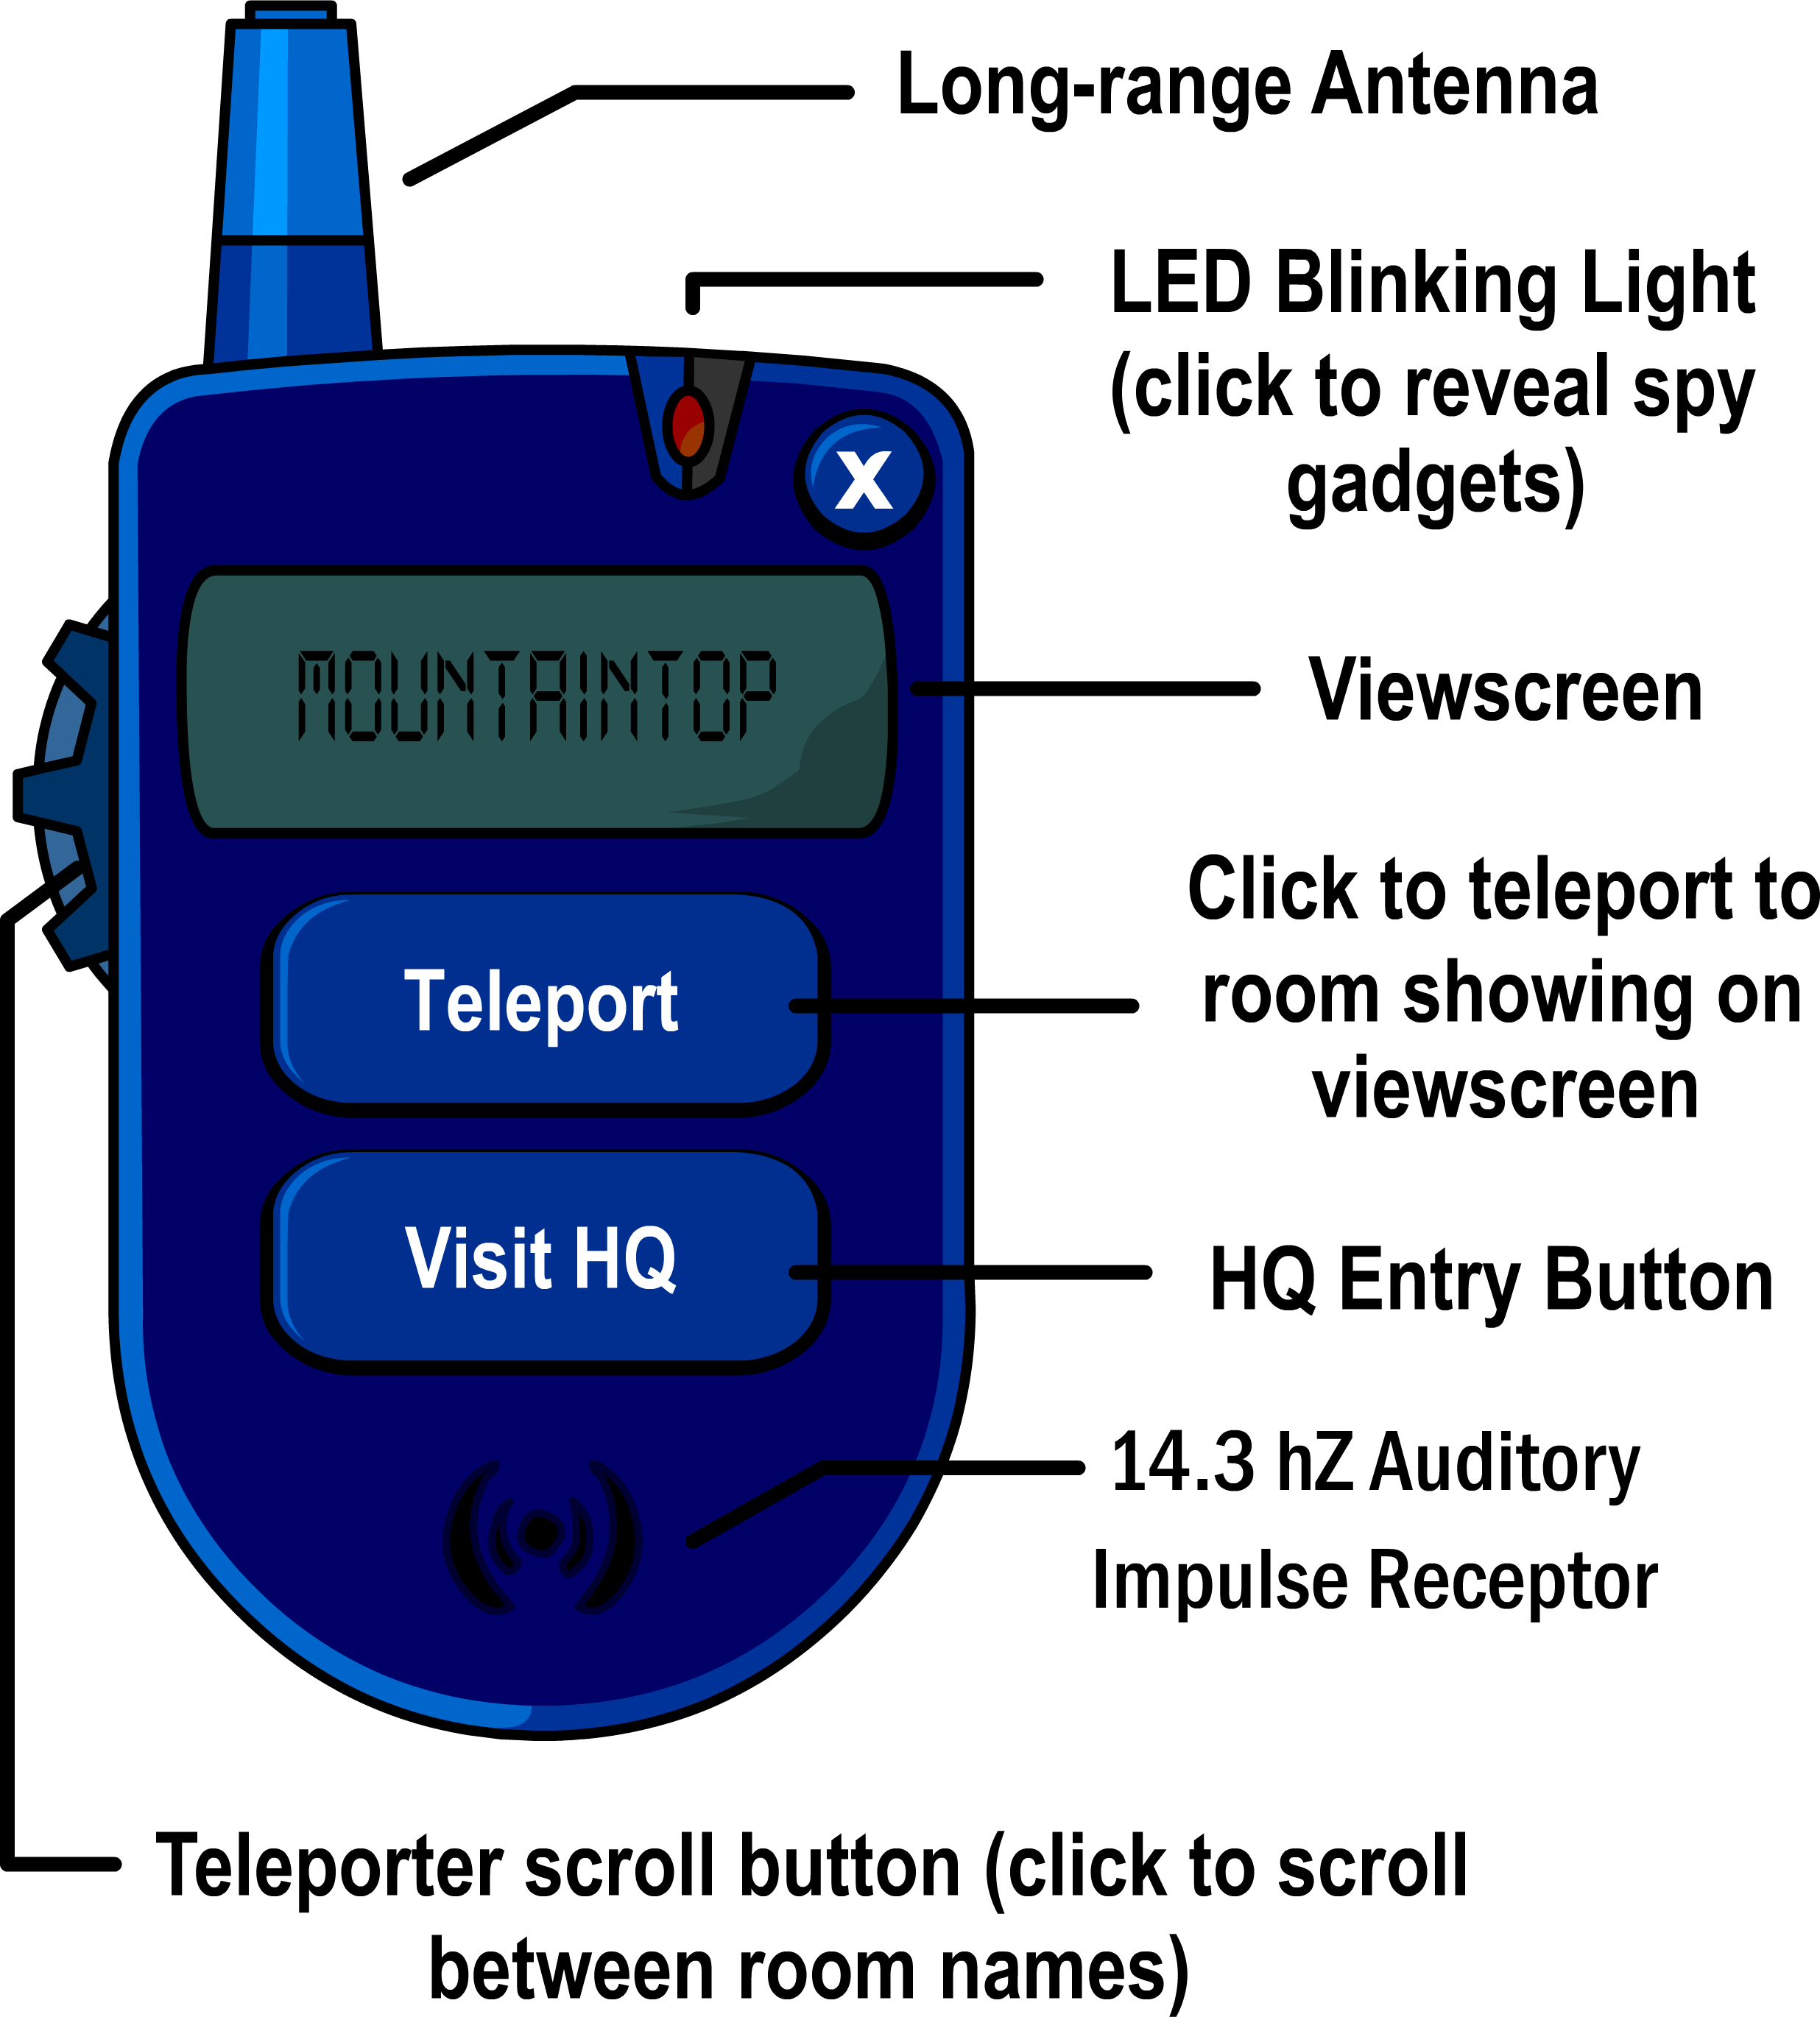 File:Spyphone diagram.PNG